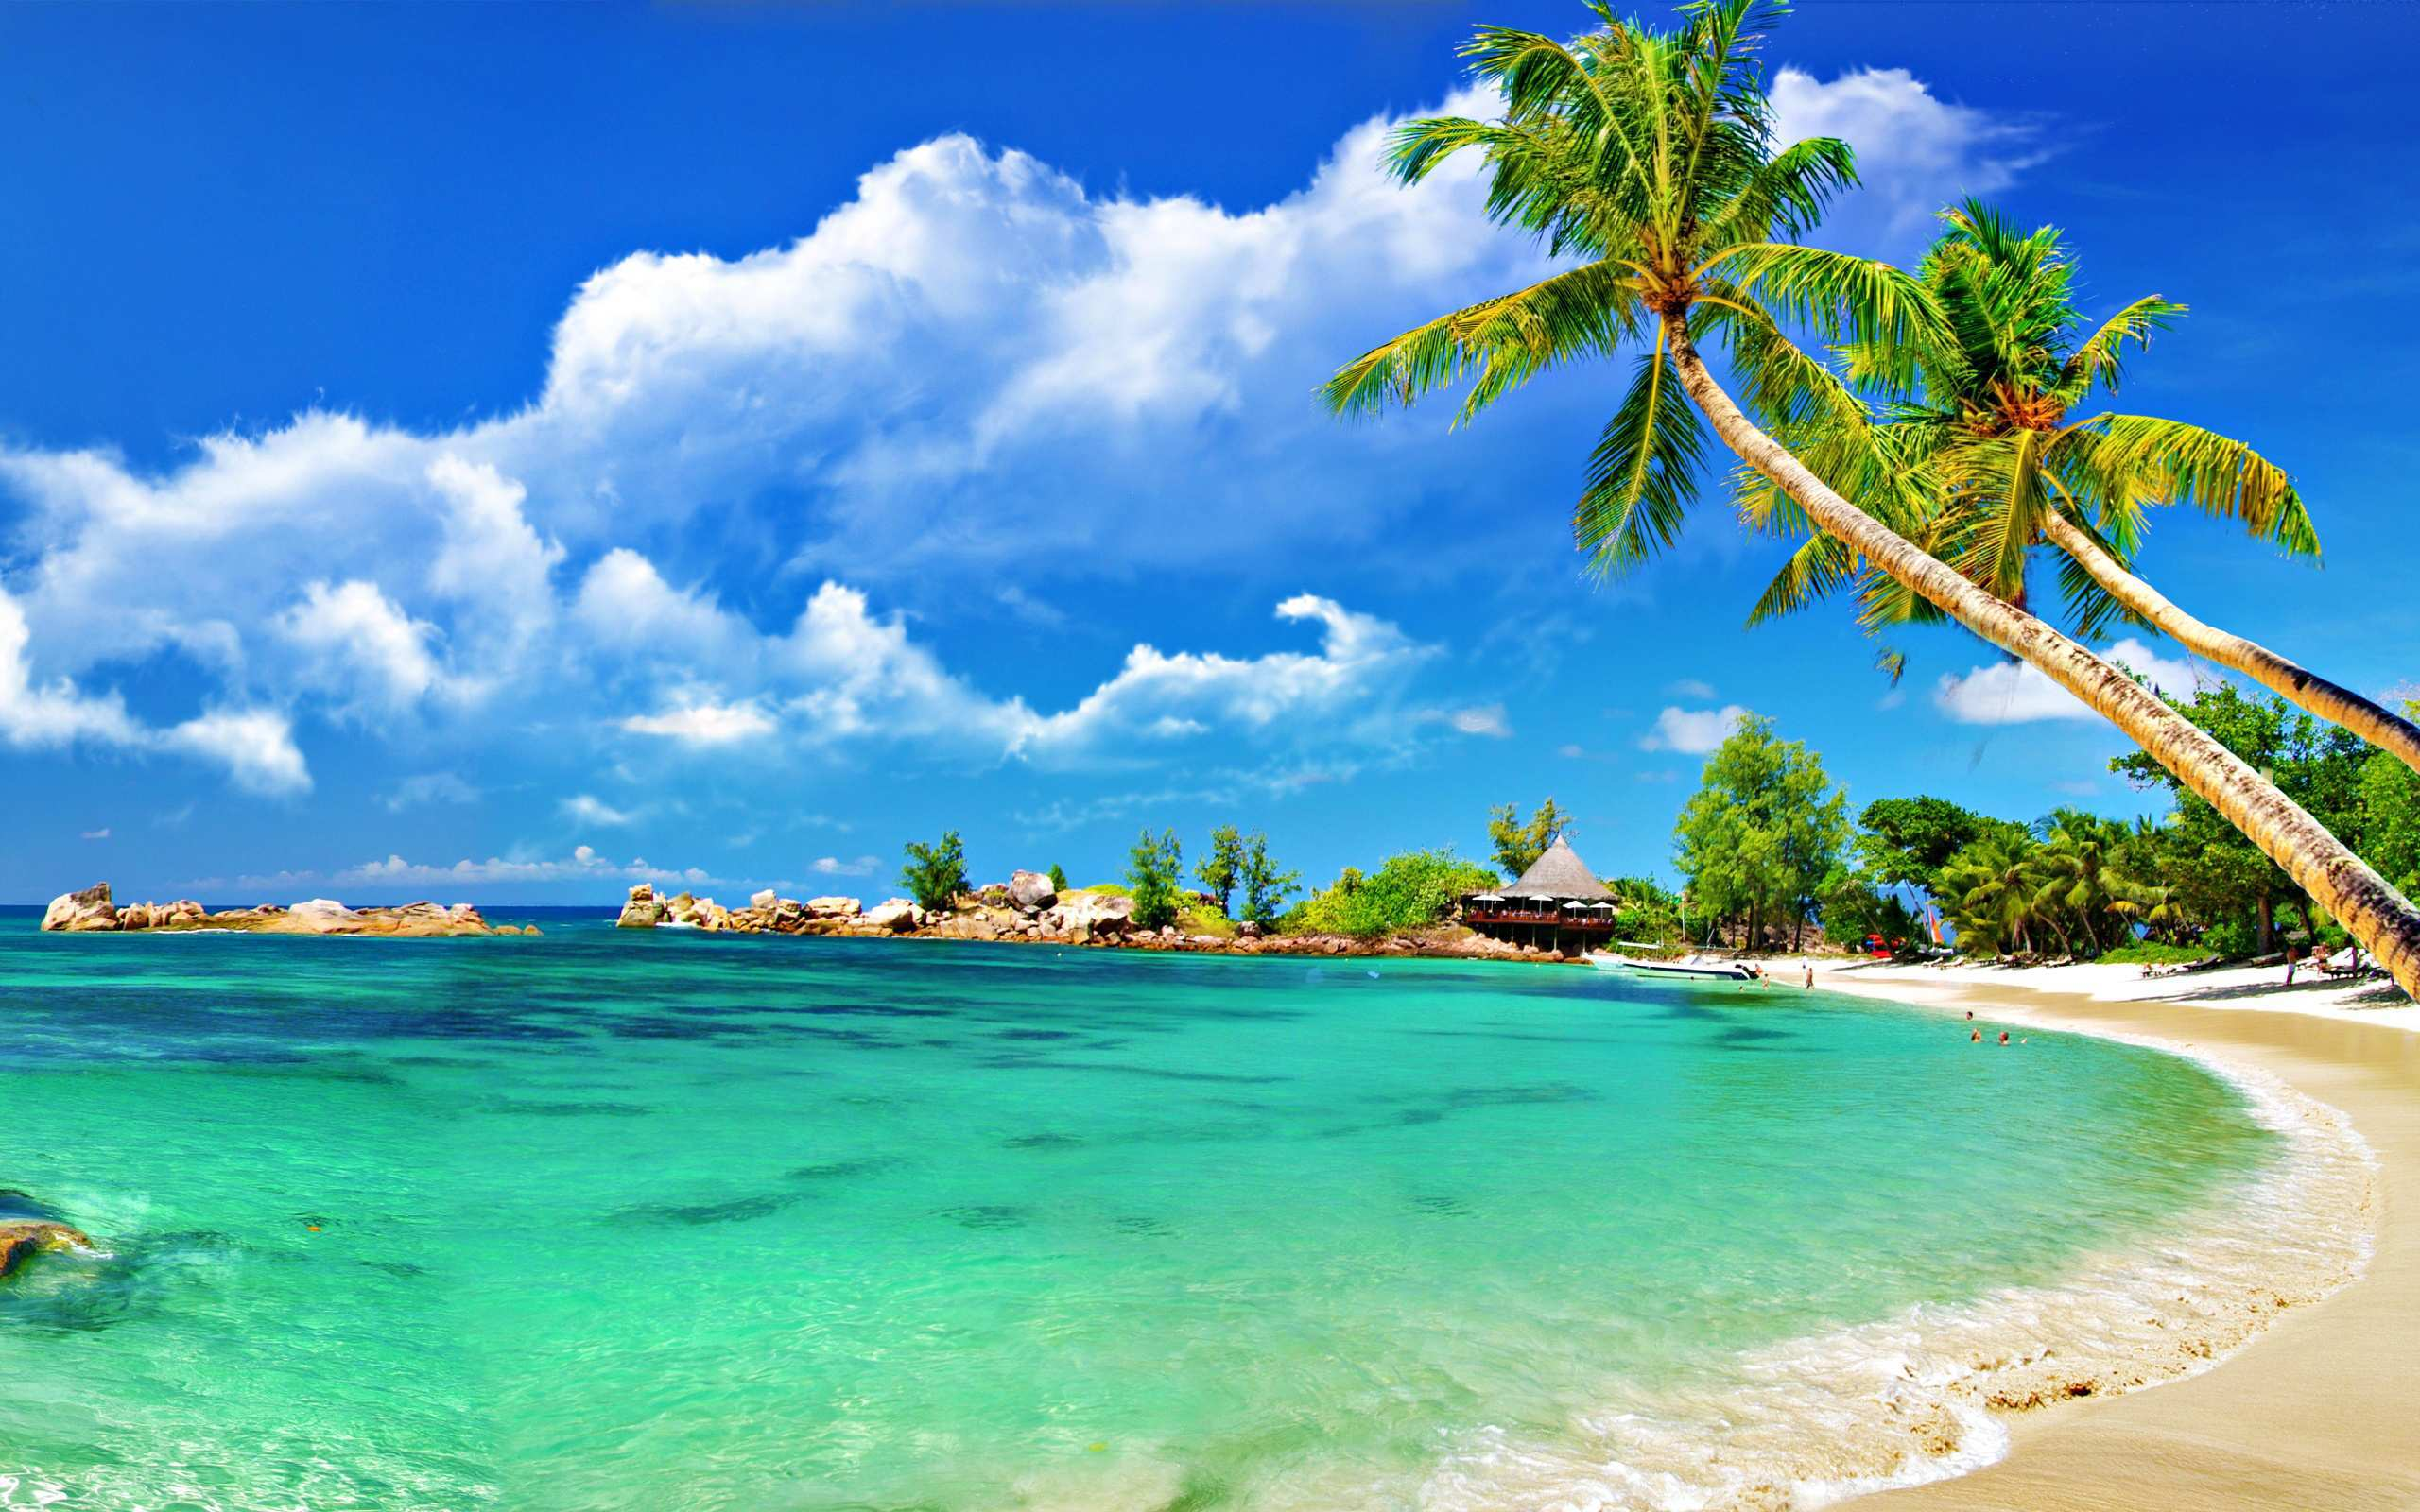 Backgrounds For Computer Screen Beach Beach wallpaper thumbnail 2560x1600